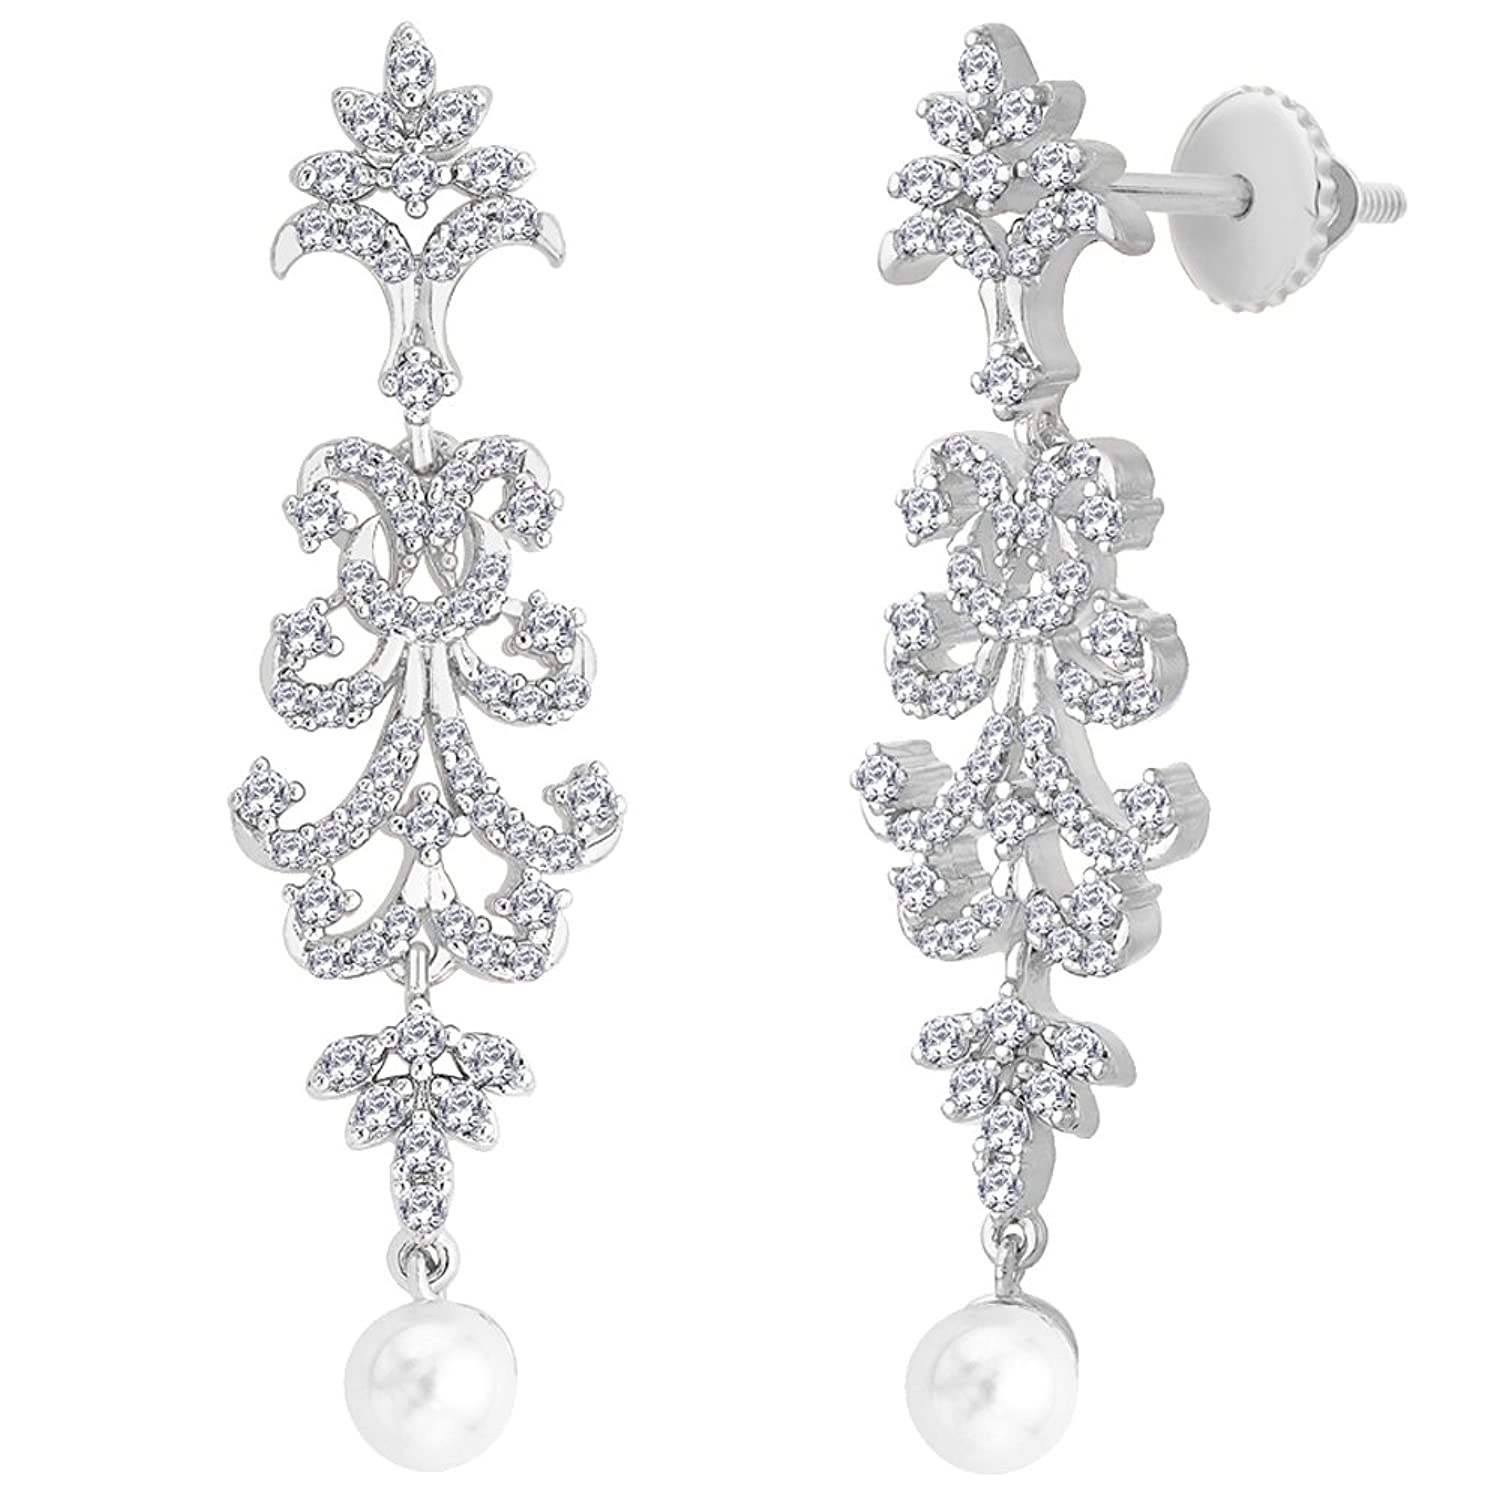 Viyari Crown Jewel Cubic Zirconia Dangle Drop Earrings with Charm Stud